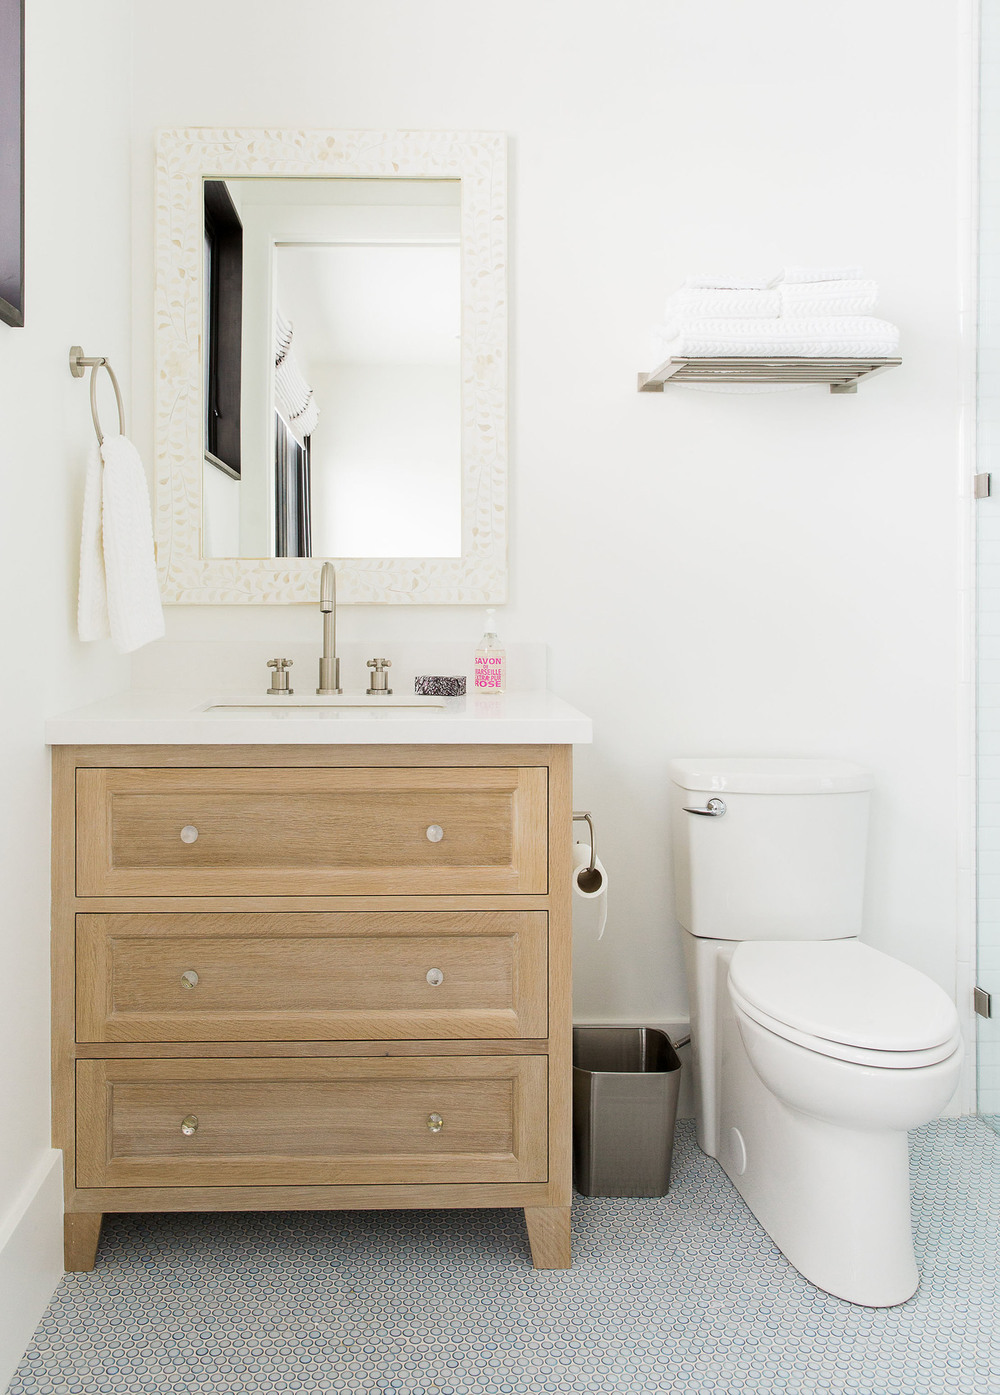 Wooden vanity next to toilet in bathroom